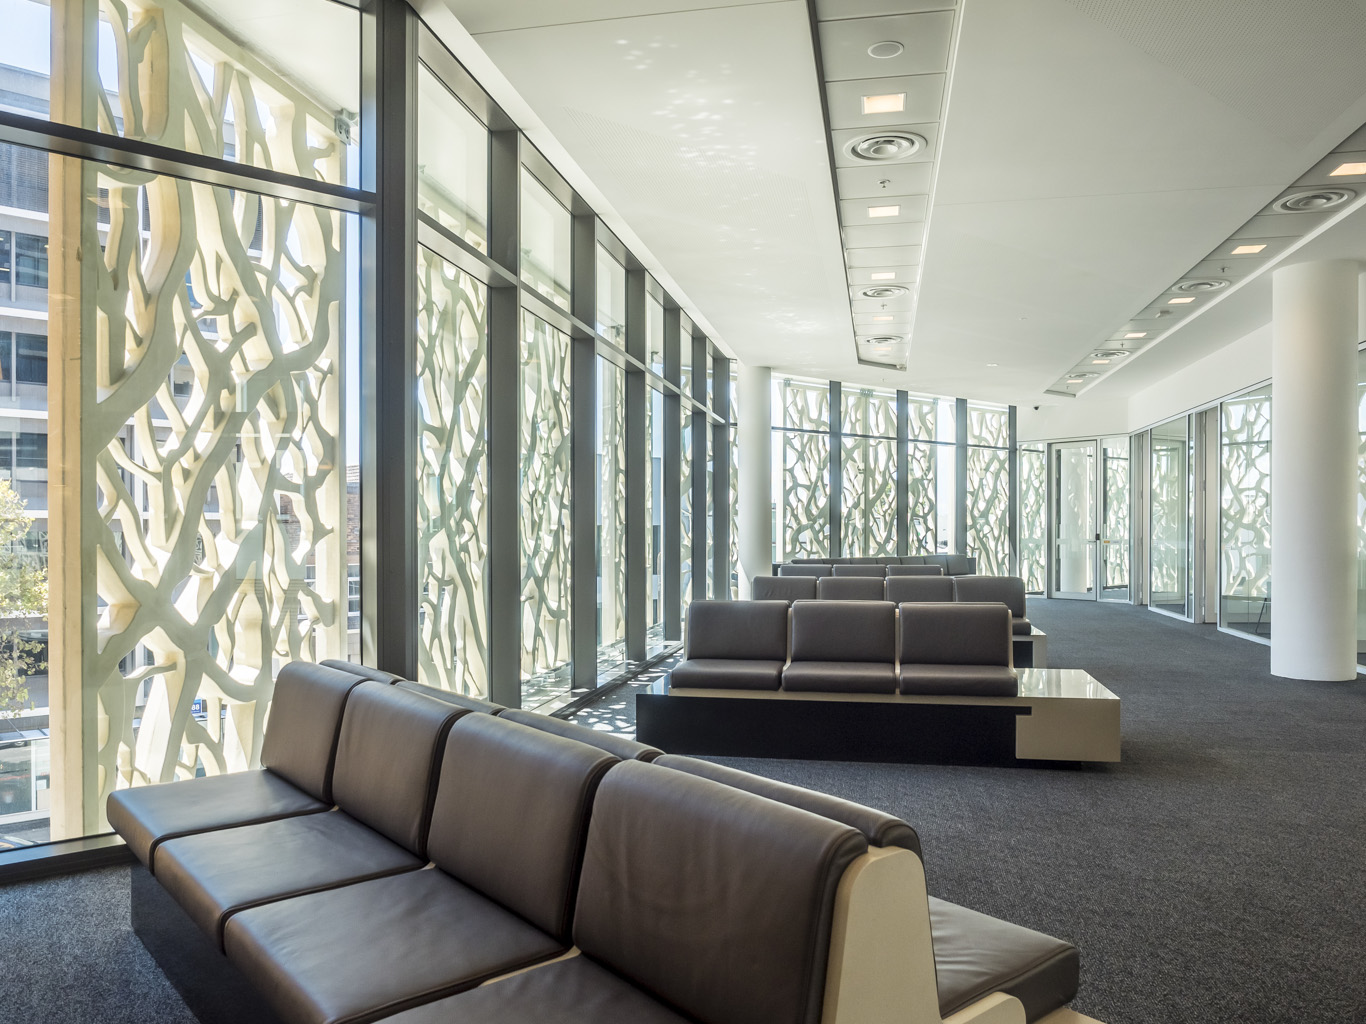 07_interior_rg_newcastle_courthouse_cox_lr